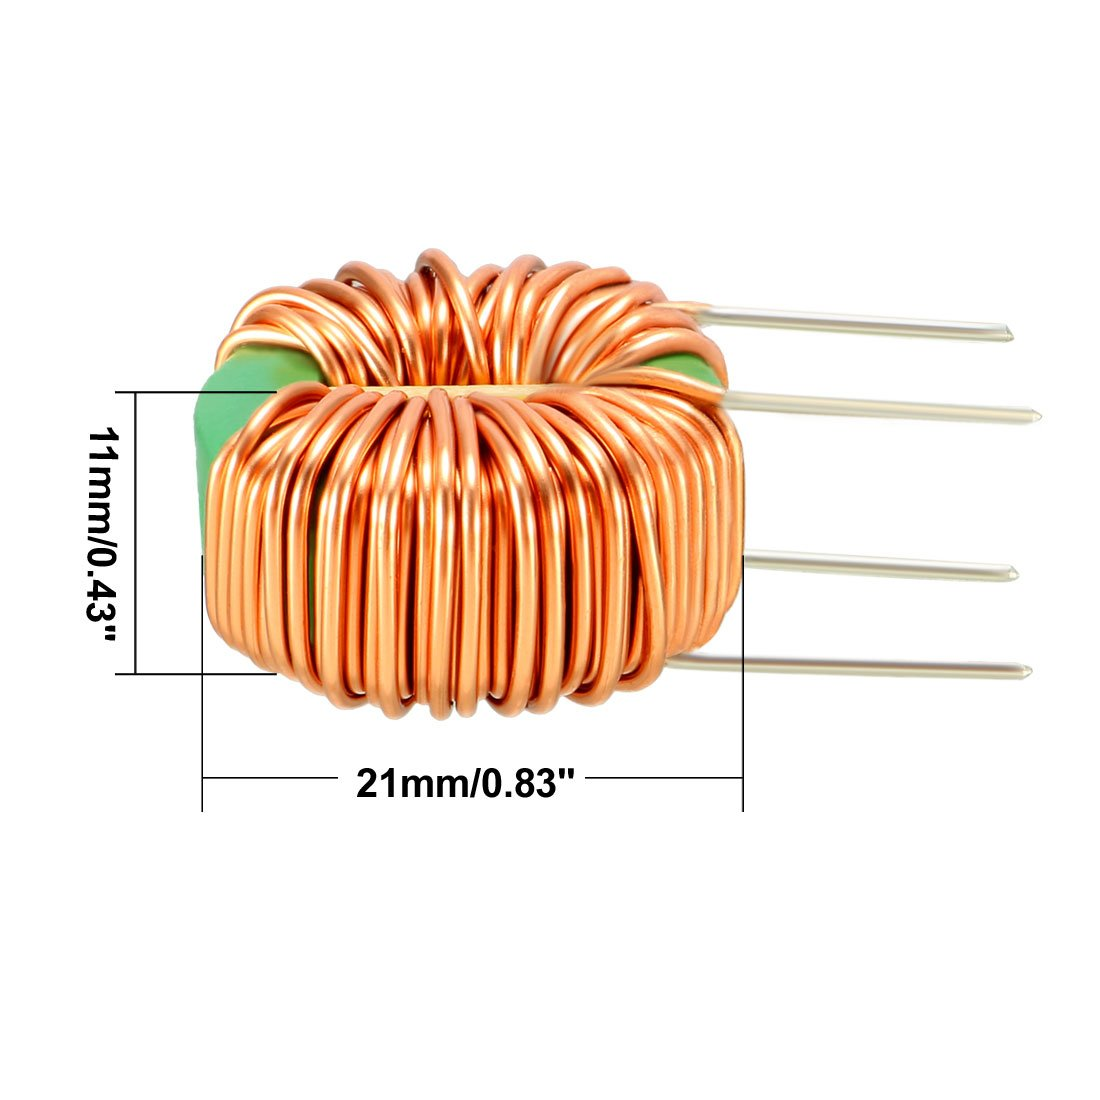 Uxcell 1pcs Horizontal Toroid Magnetic Inductor Monolayer Wire Wind Coils Of Copper Are Commonly Used In Electrical Inductors Wound 15mh 5a Inductance Coil Industrial Scientific